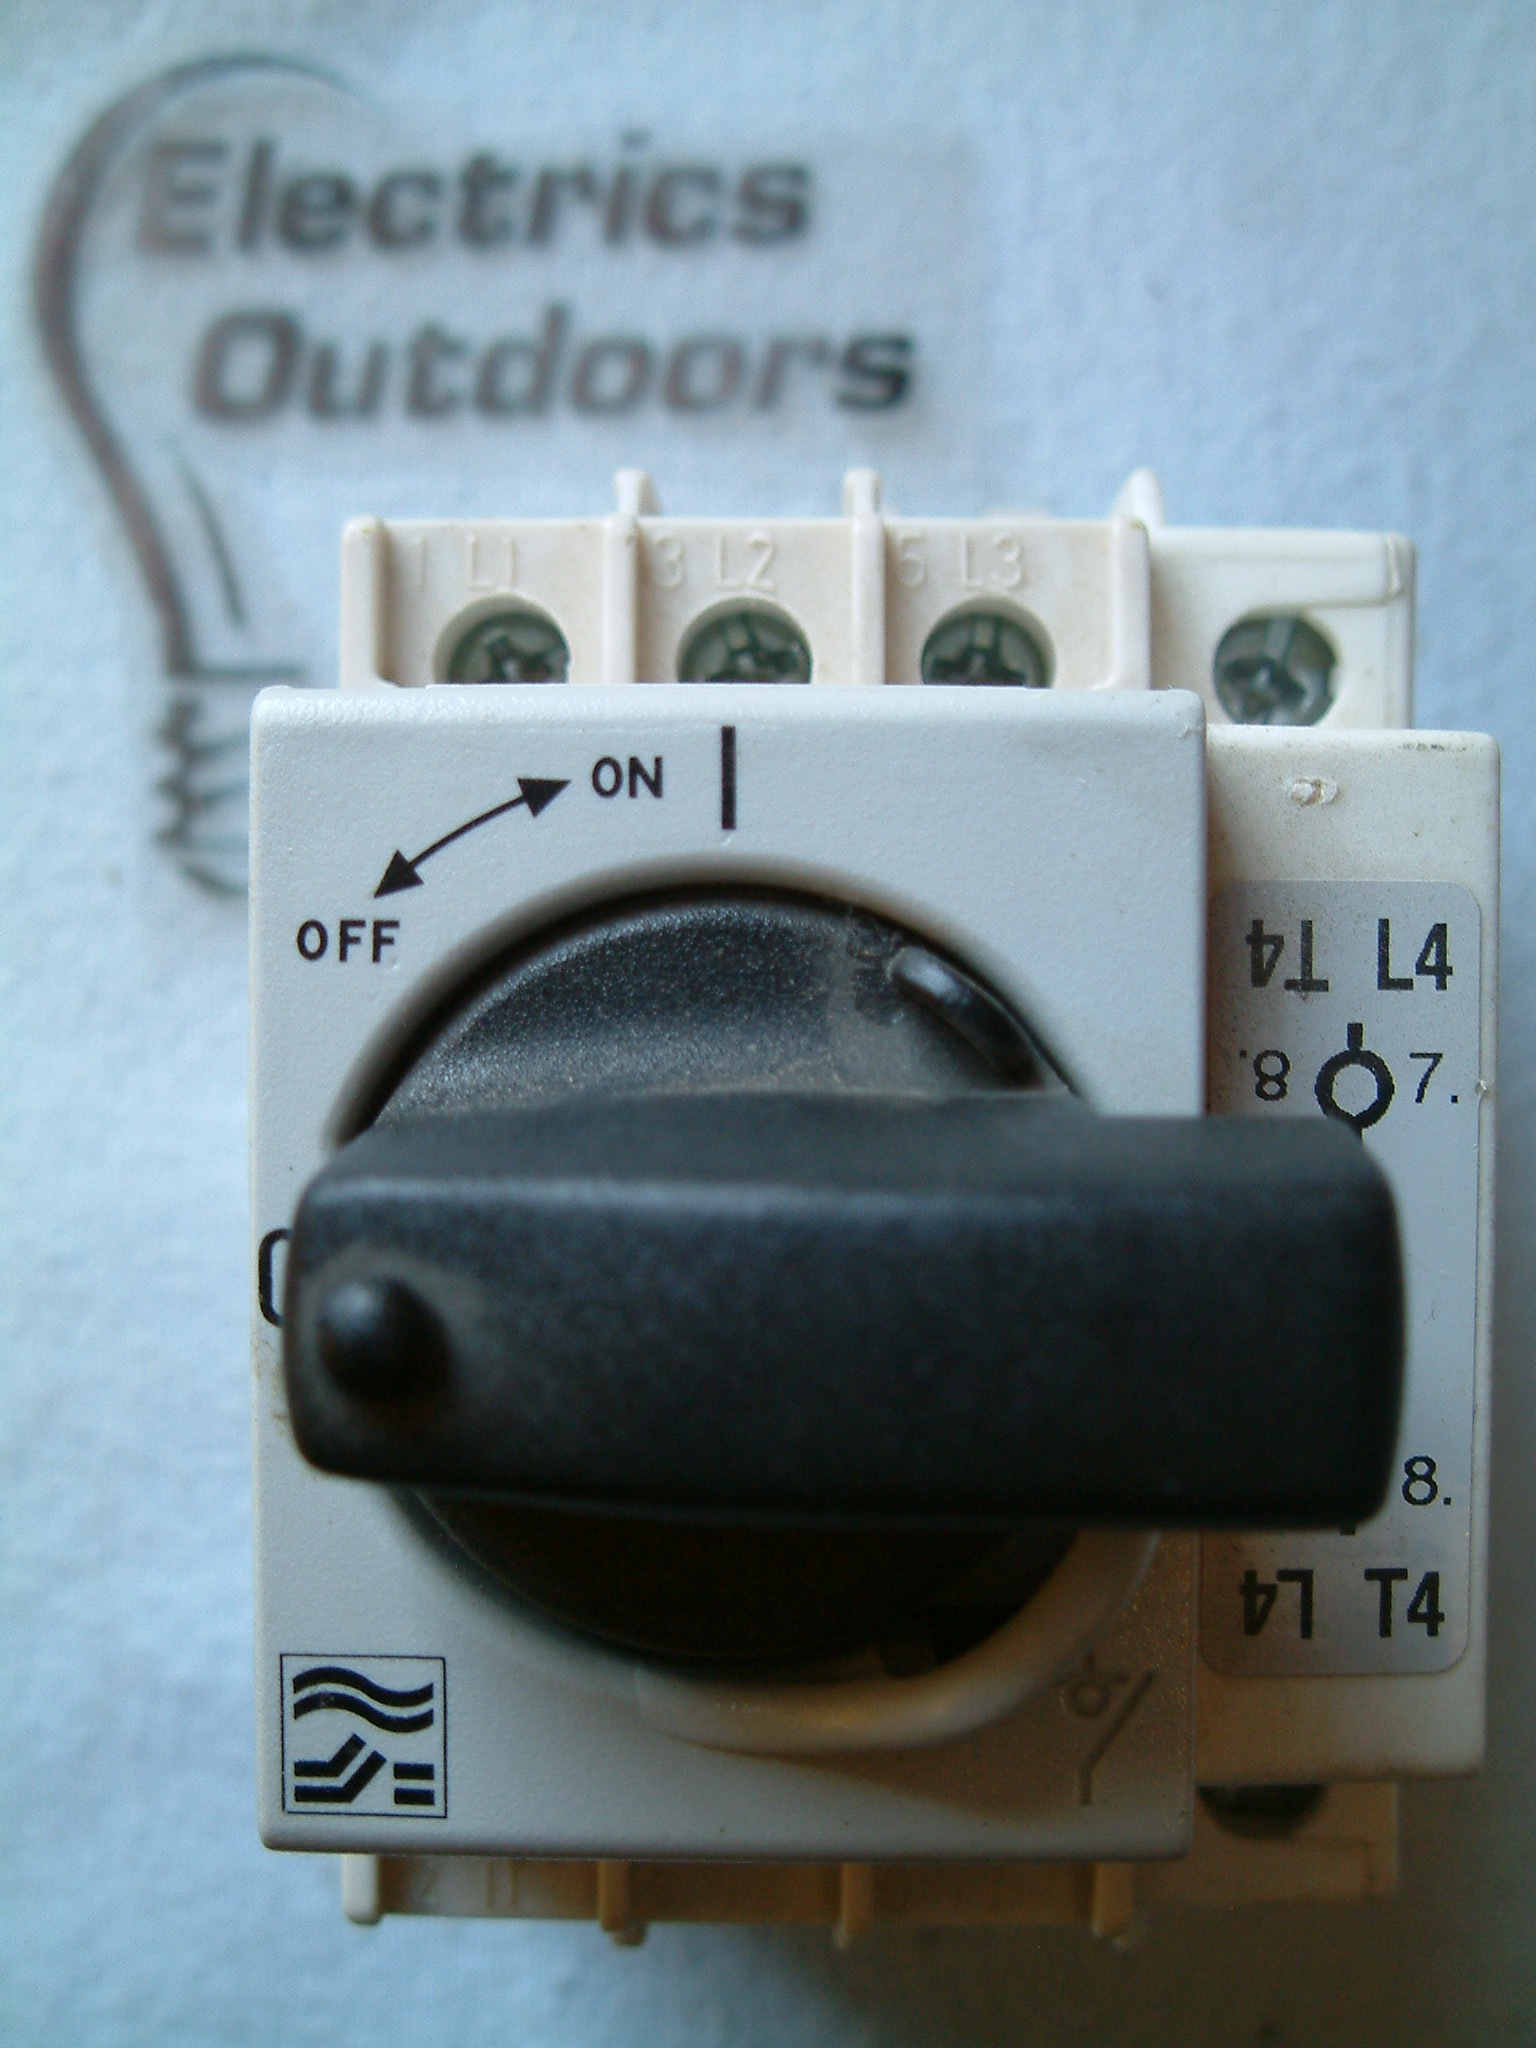 Socomec M1 Type Ar 32 Amp Triple 3 Pole Isolator Switch Ac22a With Add A Circuit Breaker 63 On 2435 Item Condition Used Stock Qty3